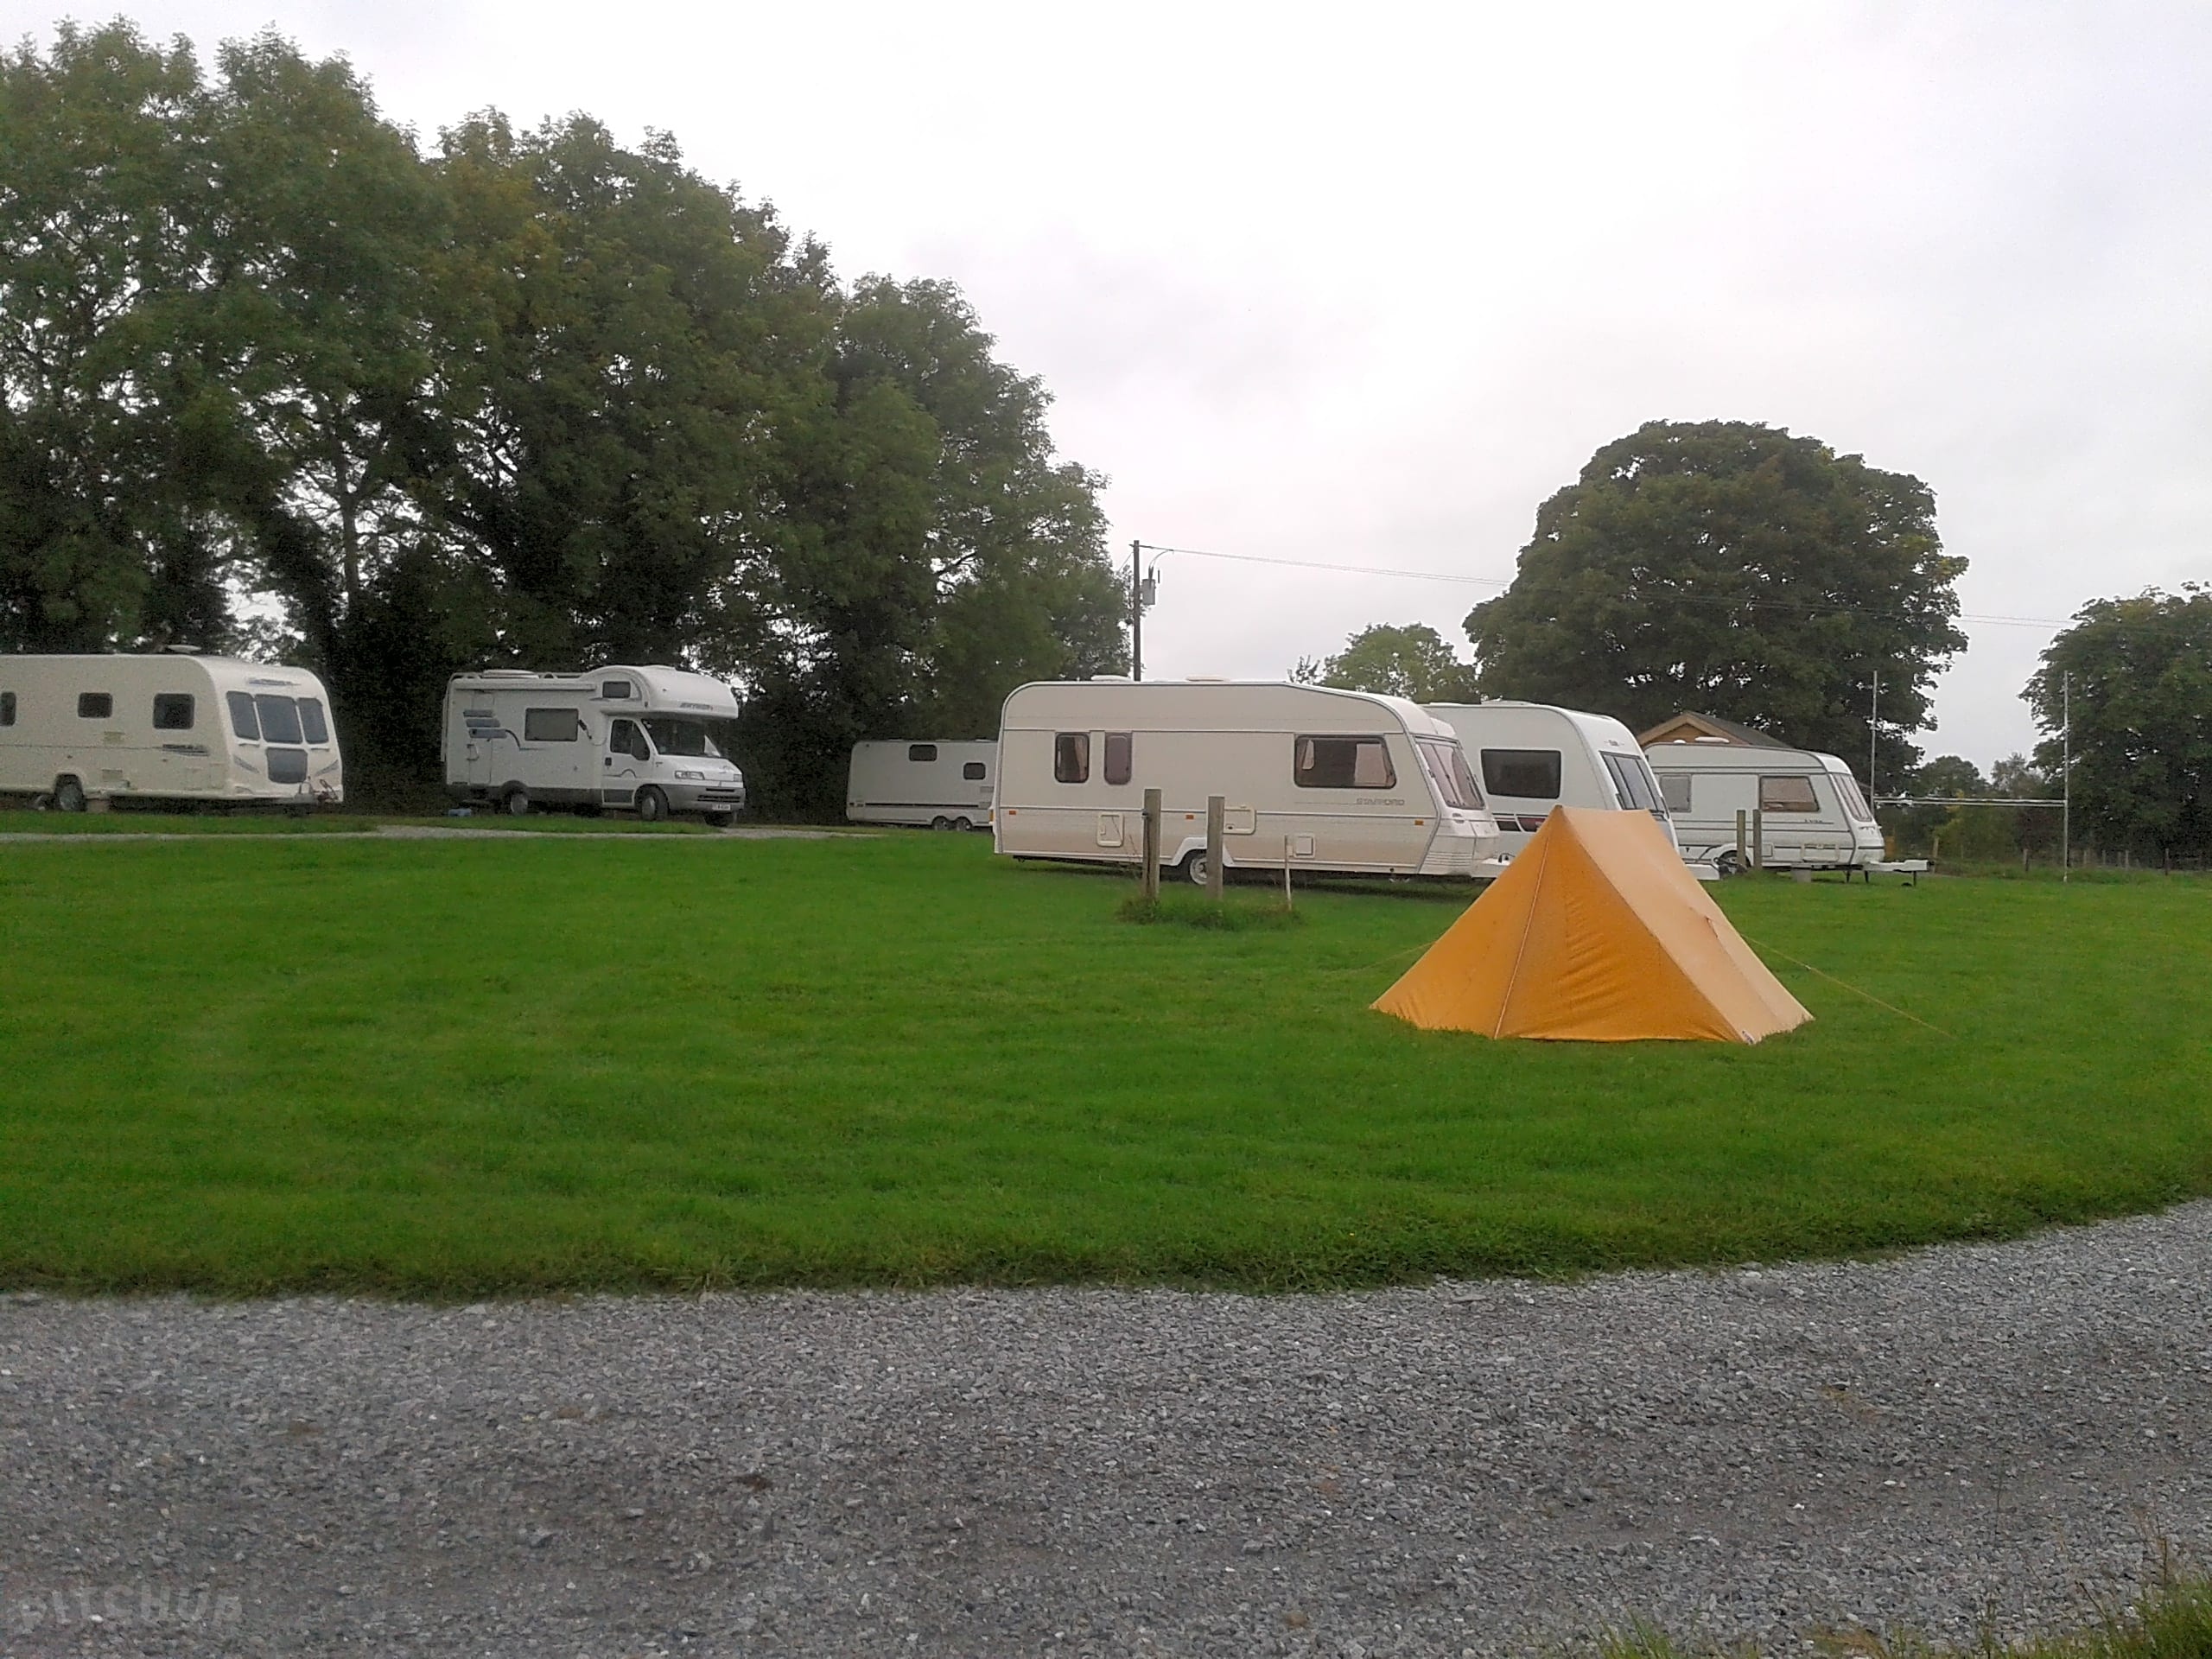 Find Cheap Tent Campgrounds in Portlaoise, Co. Laois - Pitchup